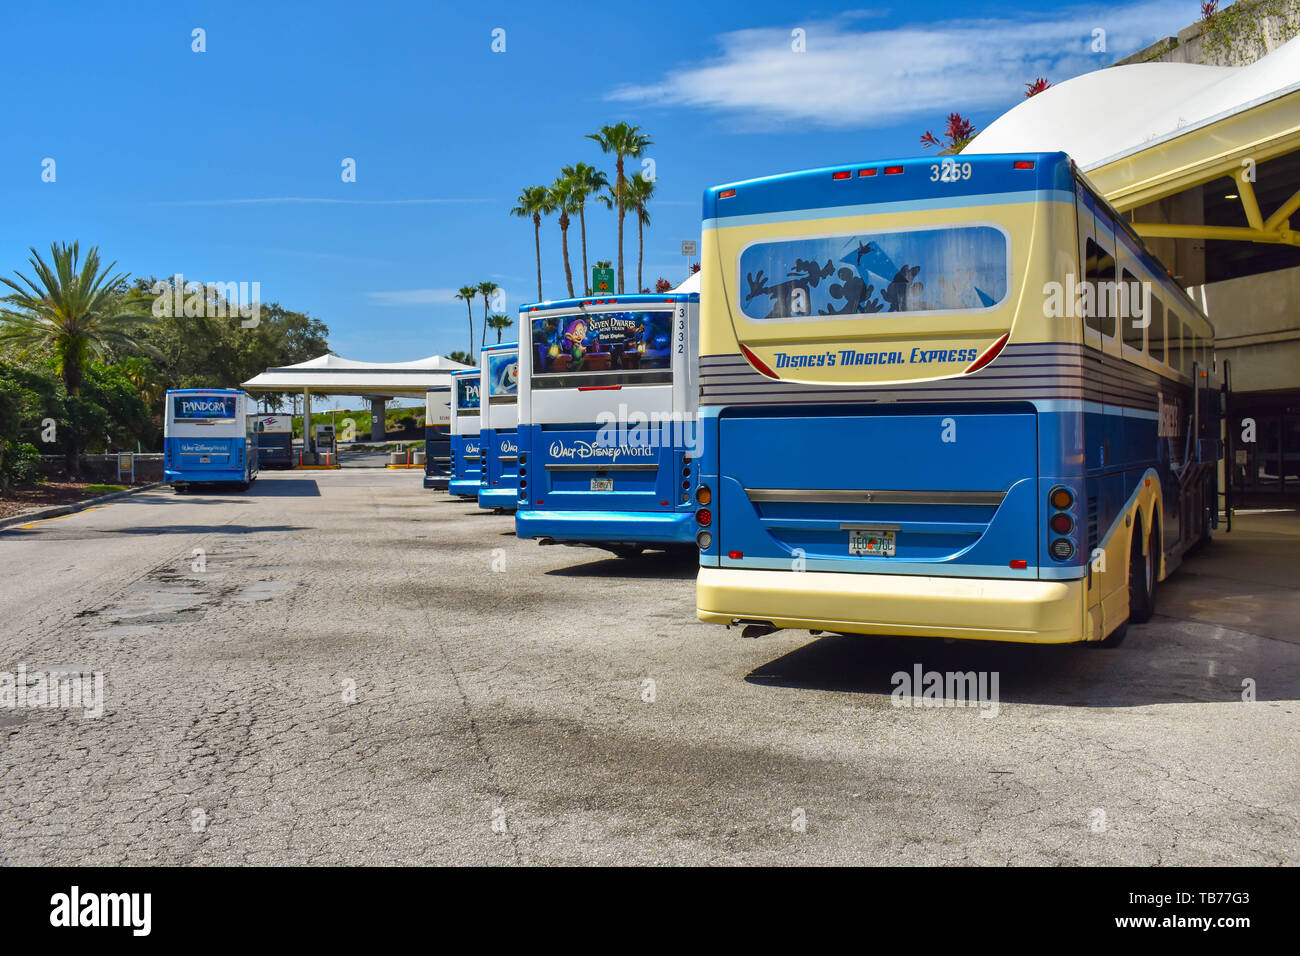 Orlando Florida March 01 2019 Disney Buses Lined Up In Terminal A Transportation Area At Orlando International Airport Stock Photo Alamy